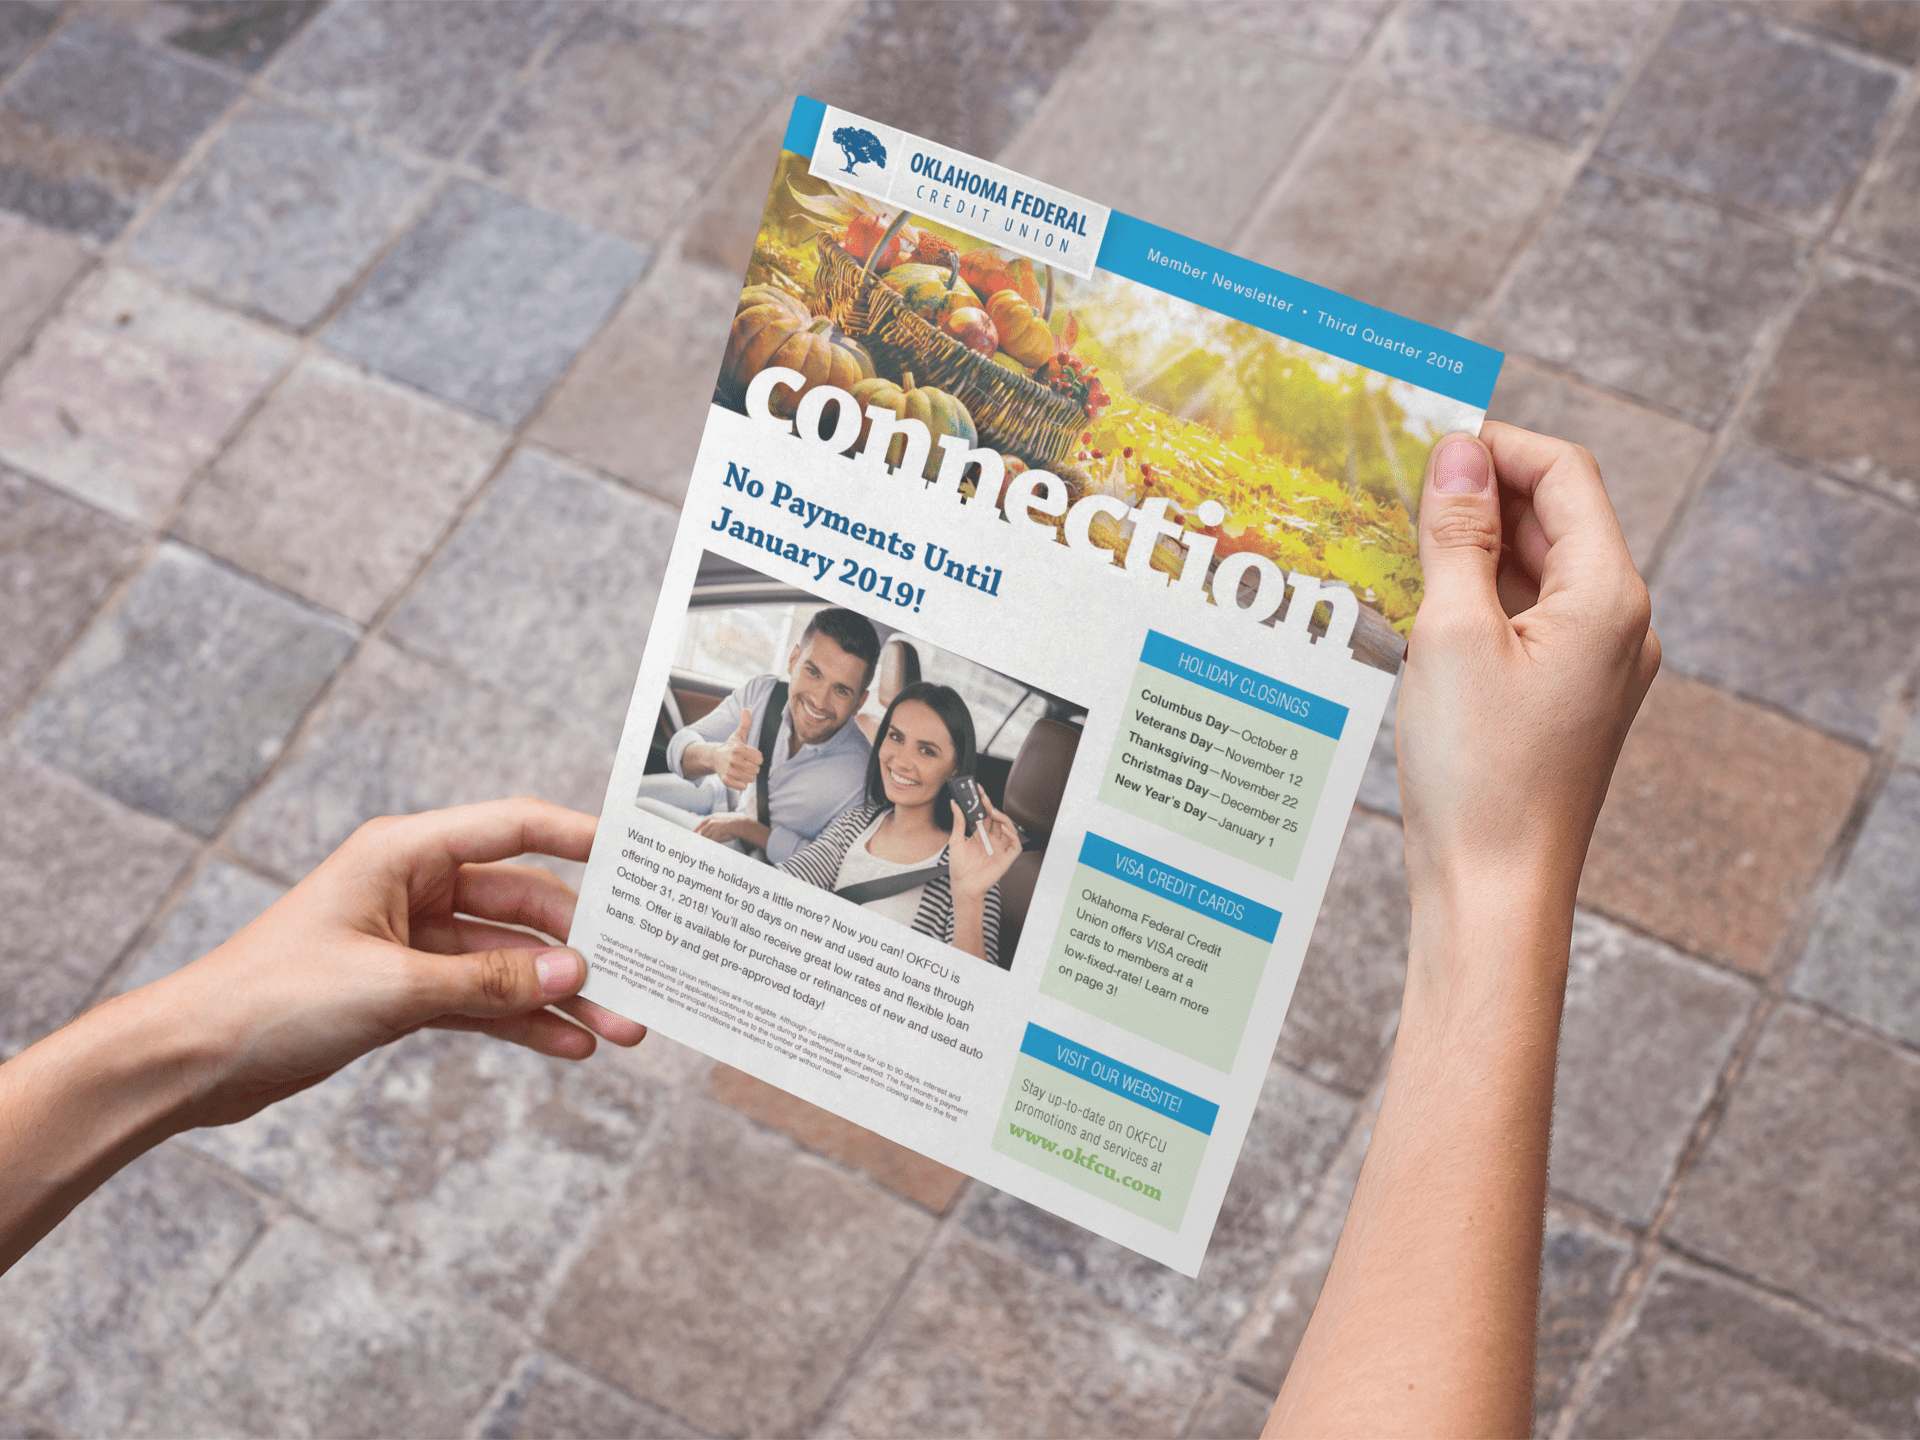 Oklahoma Federal Credit Union newsletter cover